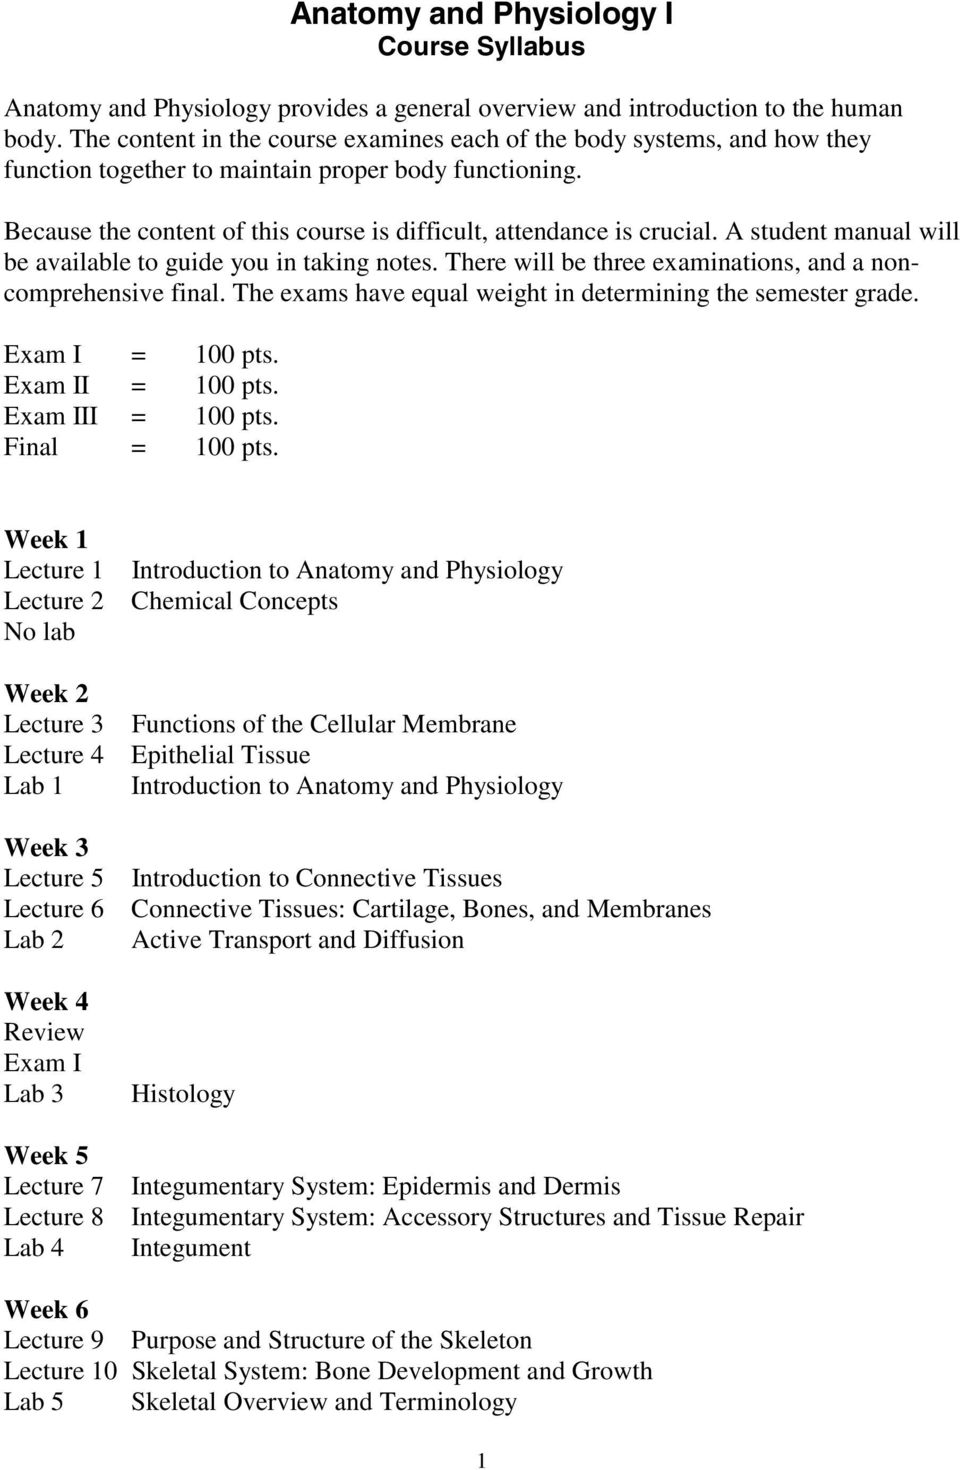 ANATOMY AND PHYSIOLOGY SYLLABUS FOR COMMUNITY COLLEGES. Leslie Dawn ...